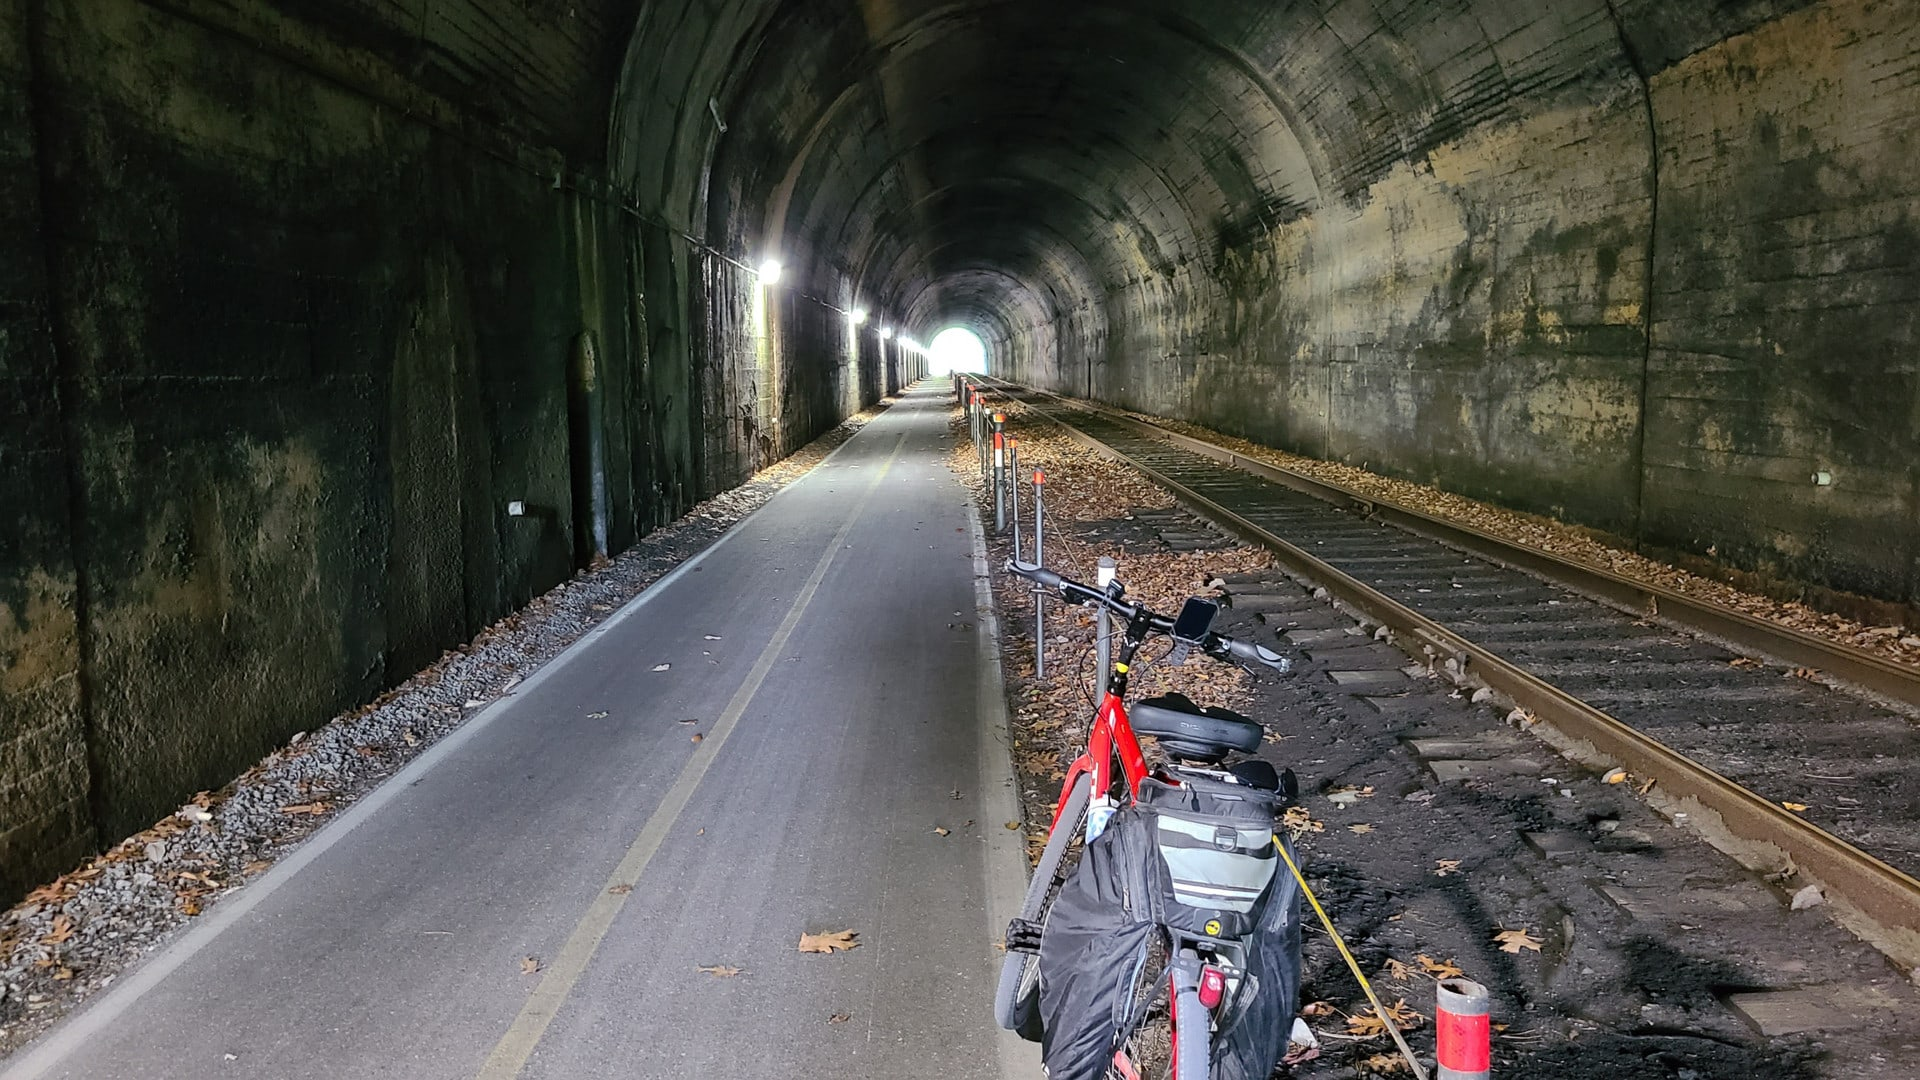 A red bike rests against a safety railing inside a well-lit tunnel. The trail is paved and a railroad track runs along the side.